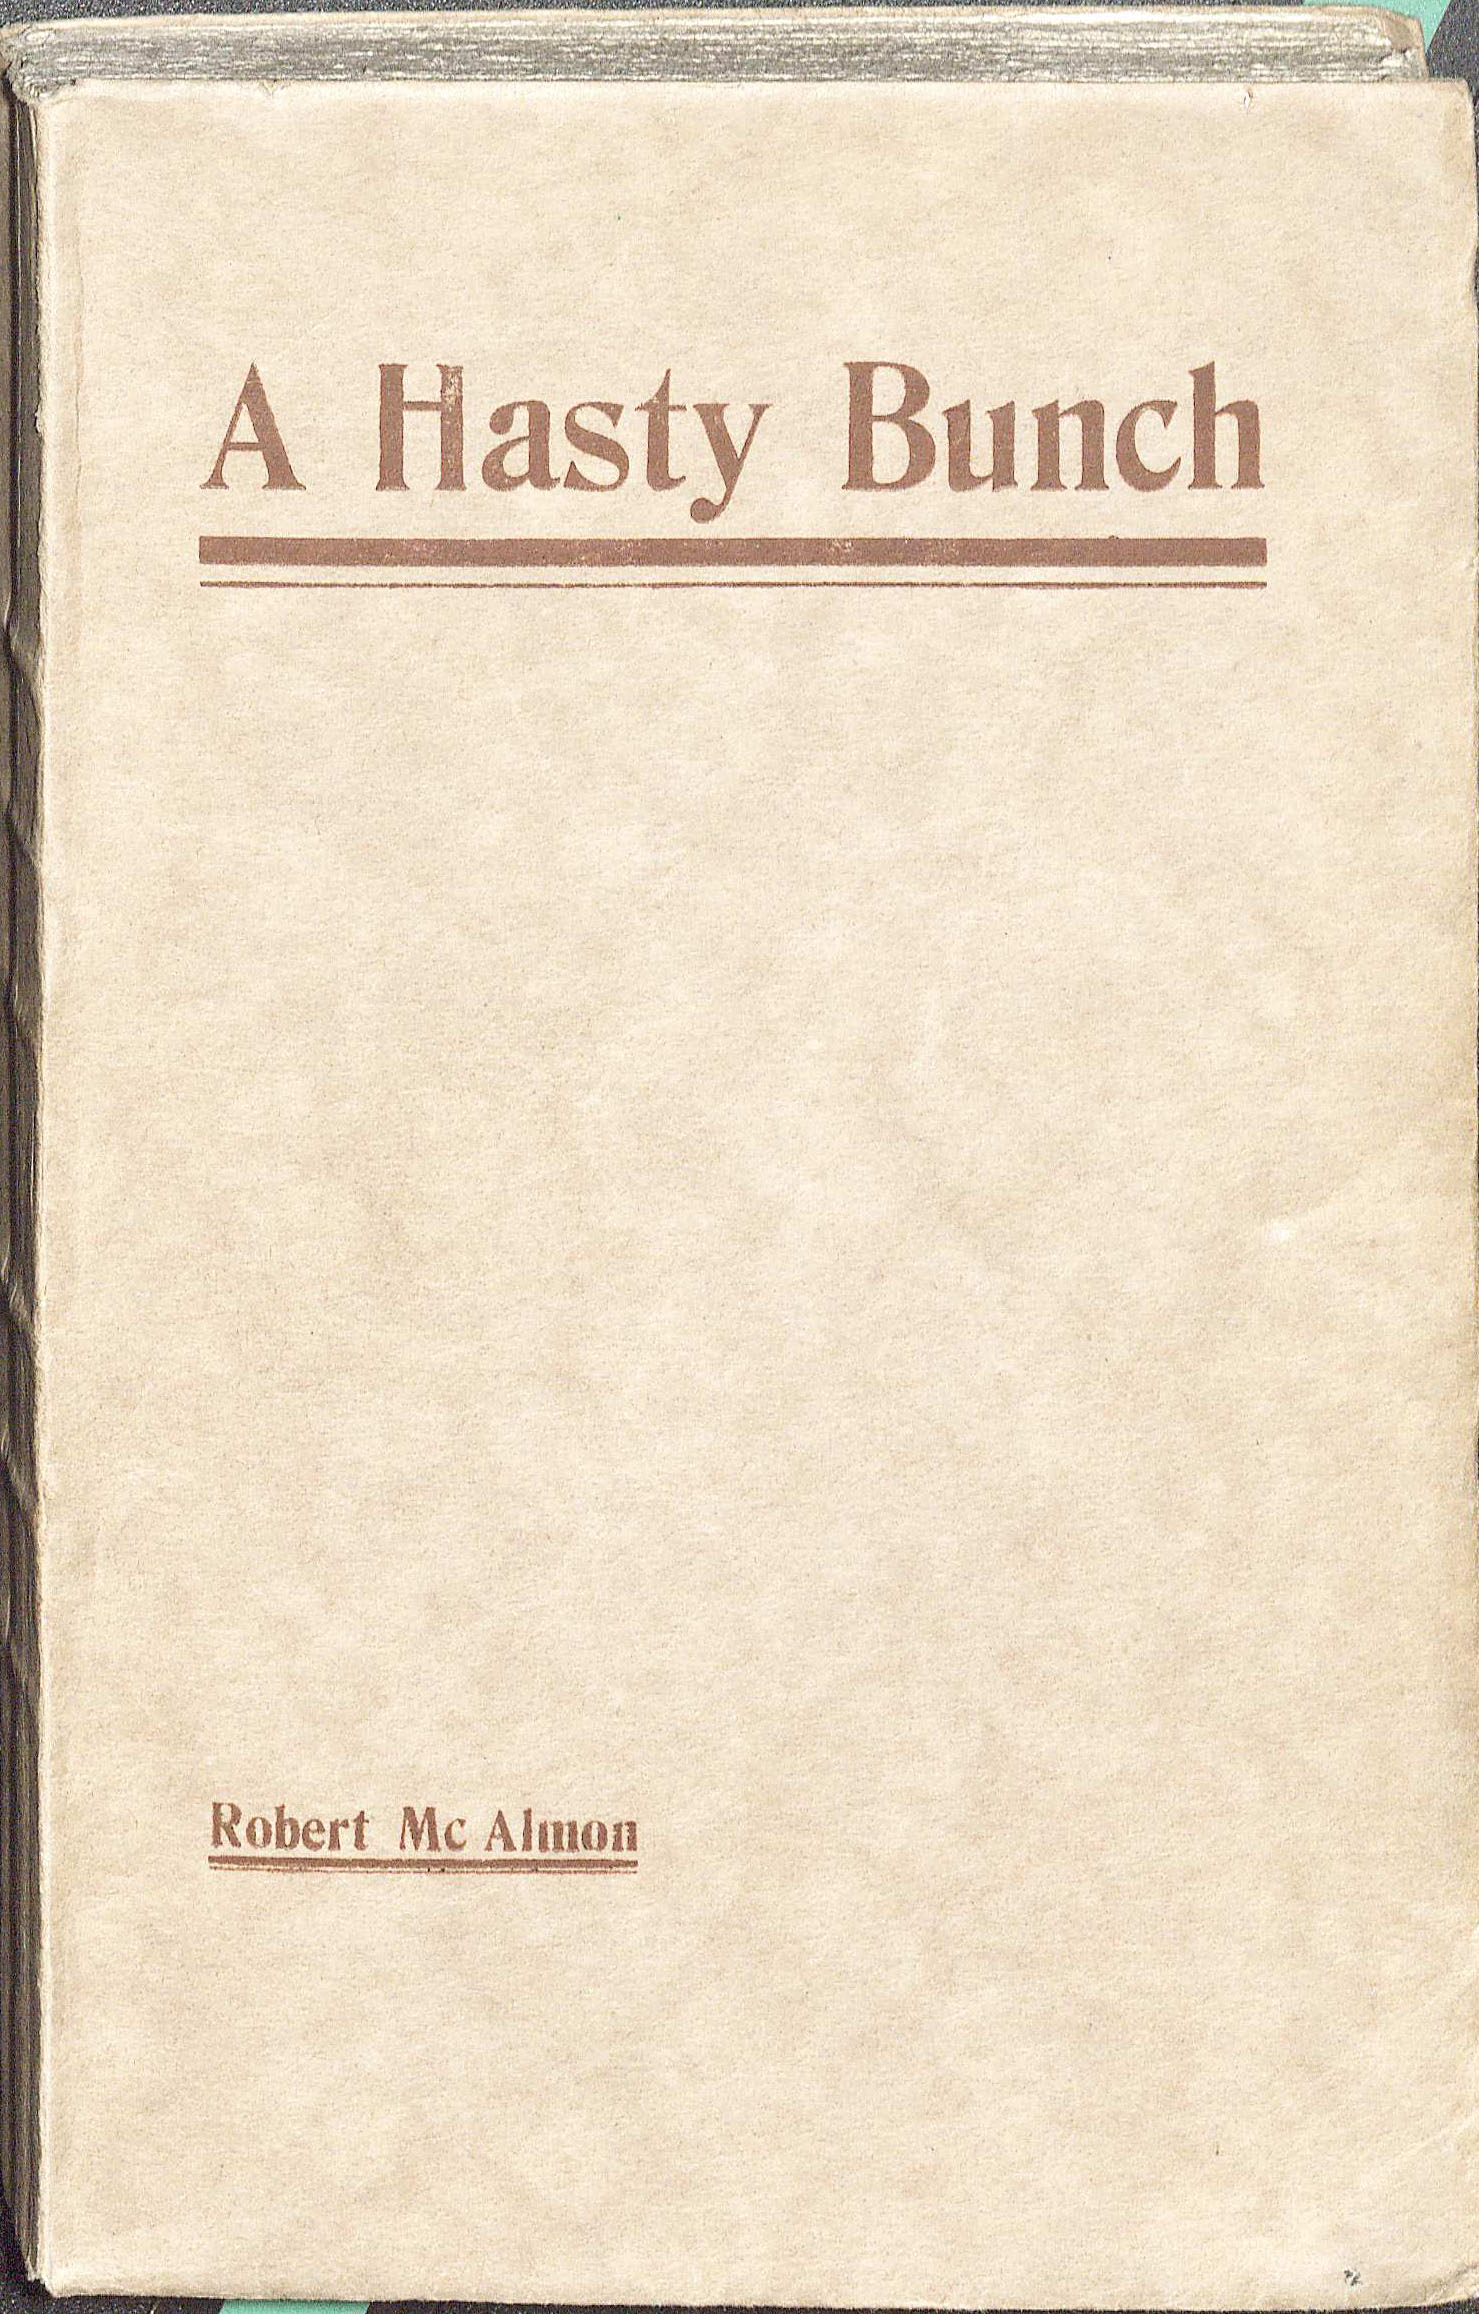 A Hasty Bunch (PS3525 .A1143H3 1922. Clifton Waller Barrett Library of American Literature. Image by Petrina Jackson)